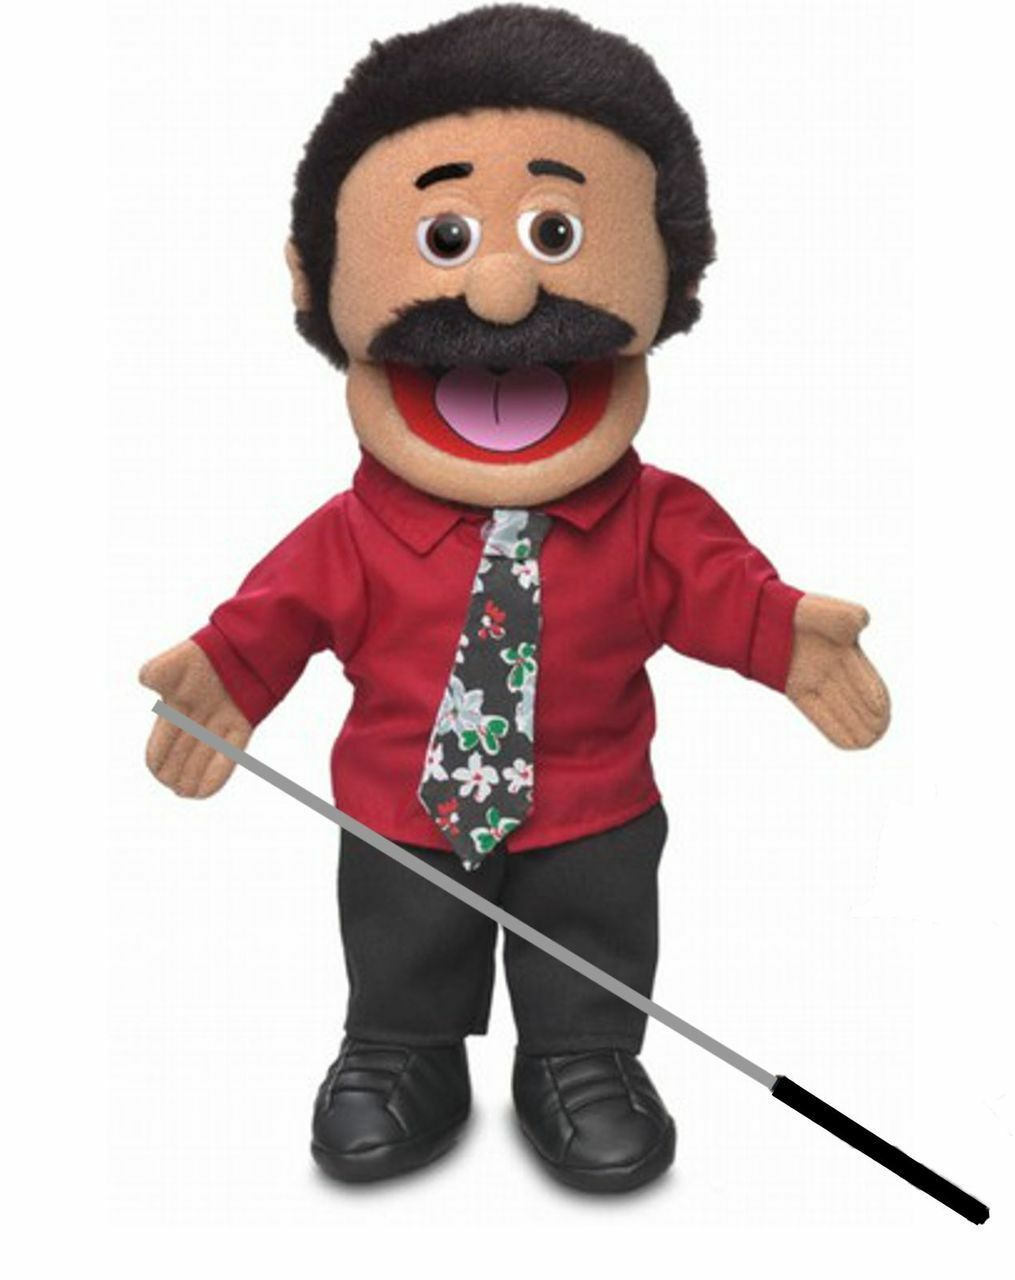 Silly Puppets Carlos Puppet Bundle 14 inch with Arm Rod